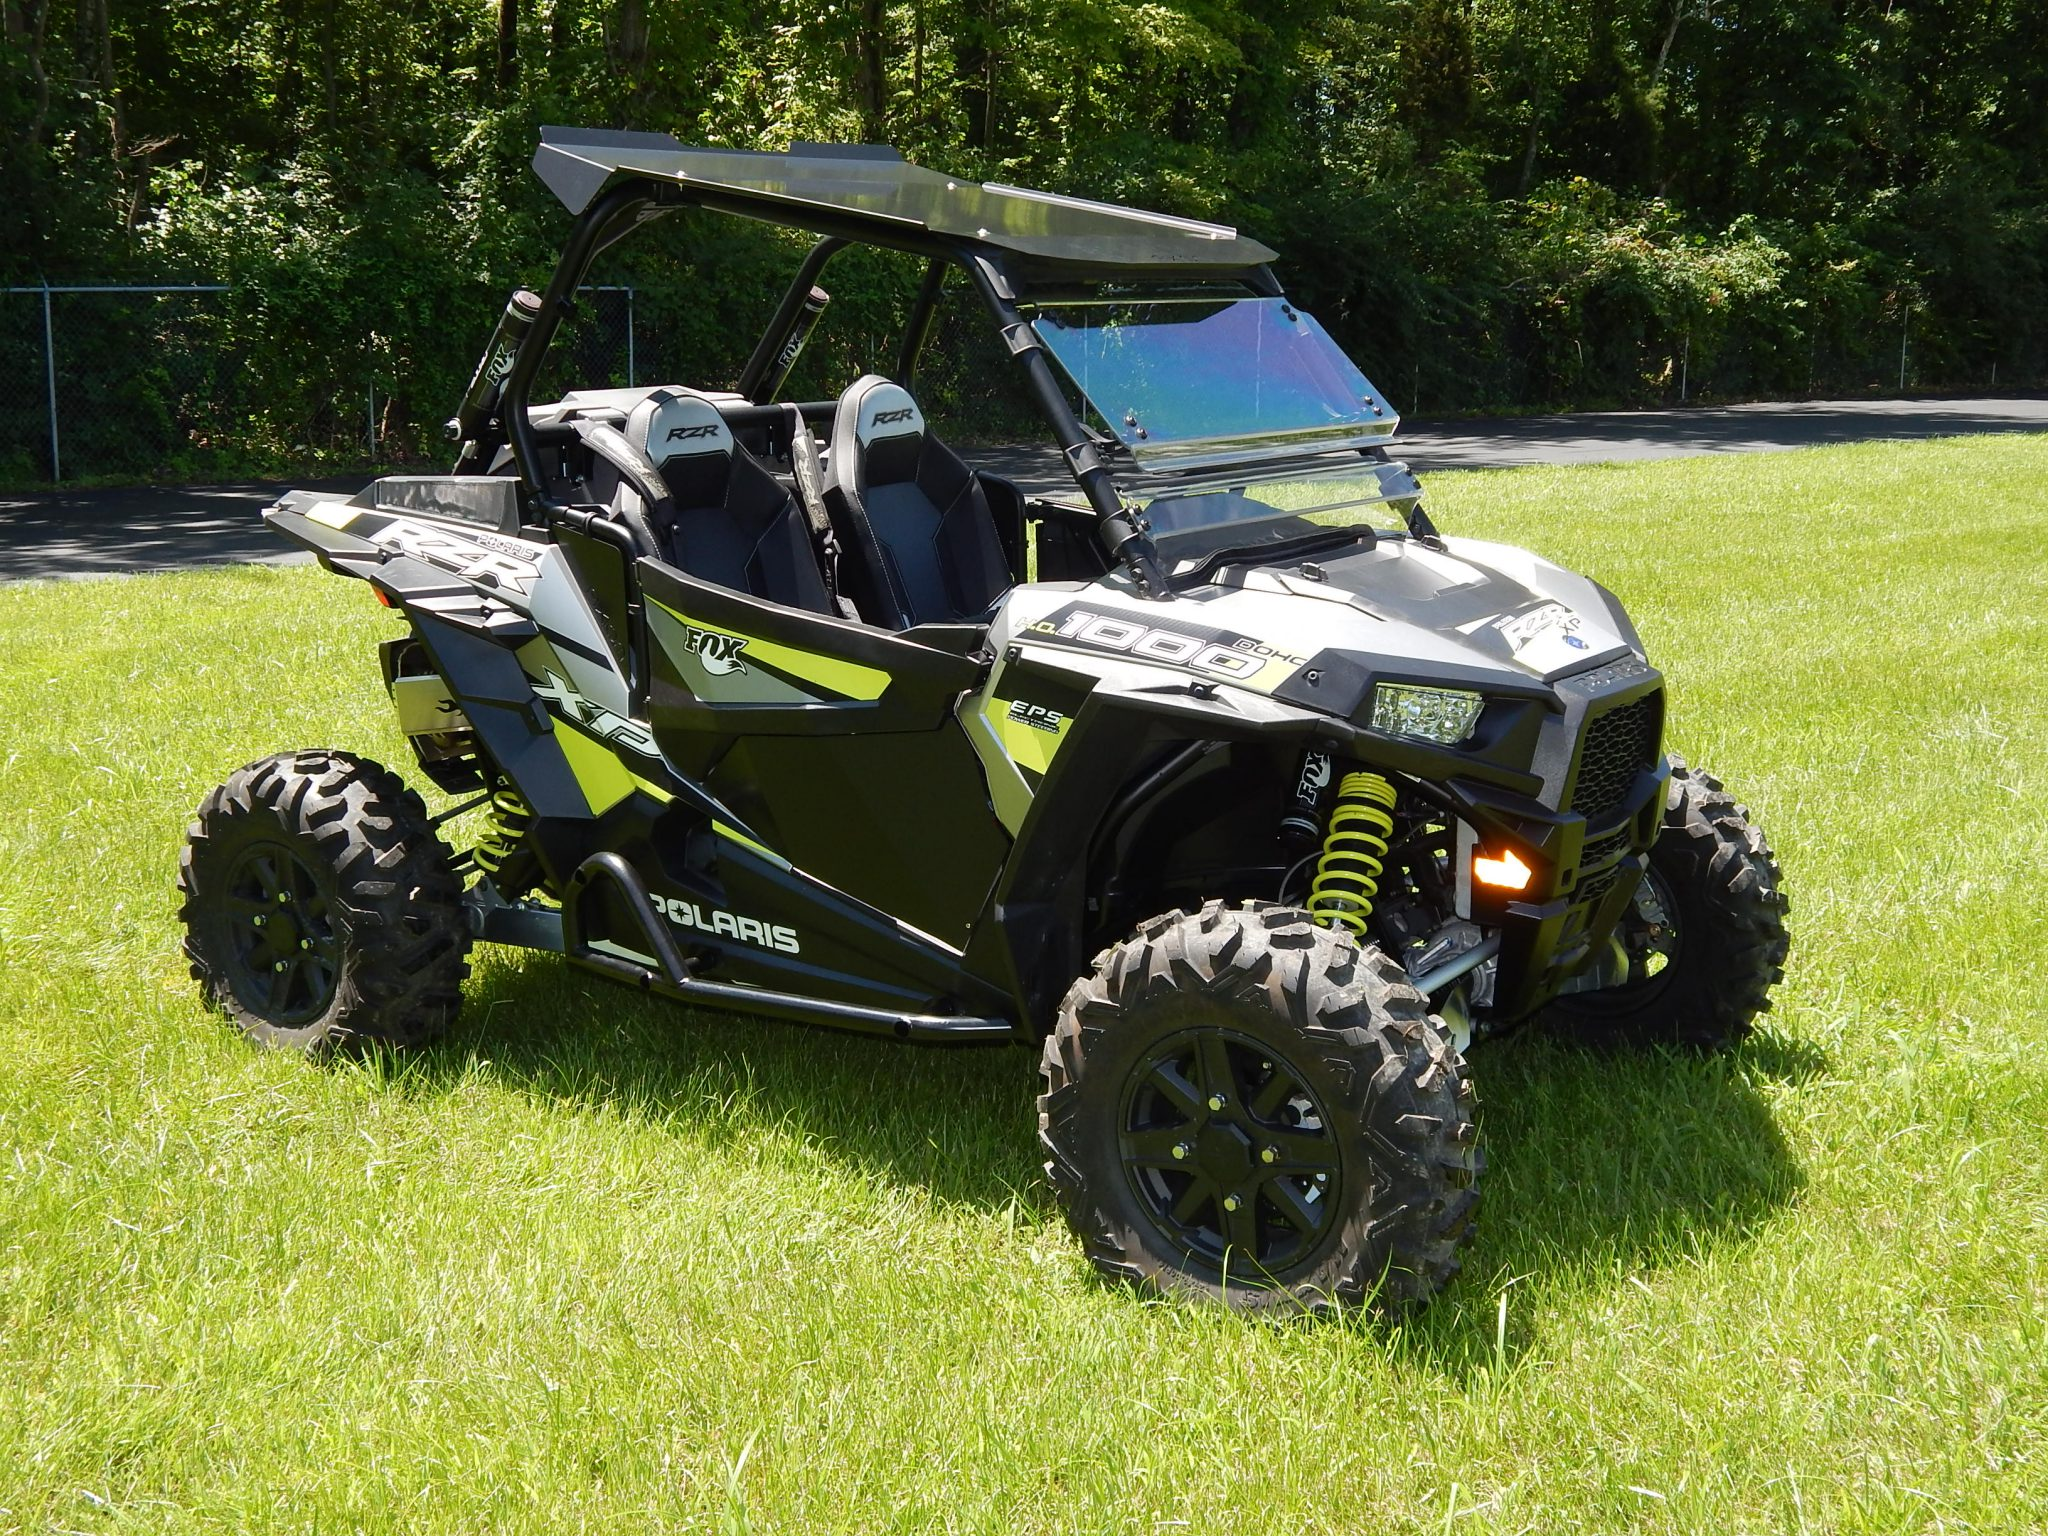 Axiom Roof 2 Seater Polaris Rzr S 1000 Axiom Side By Side